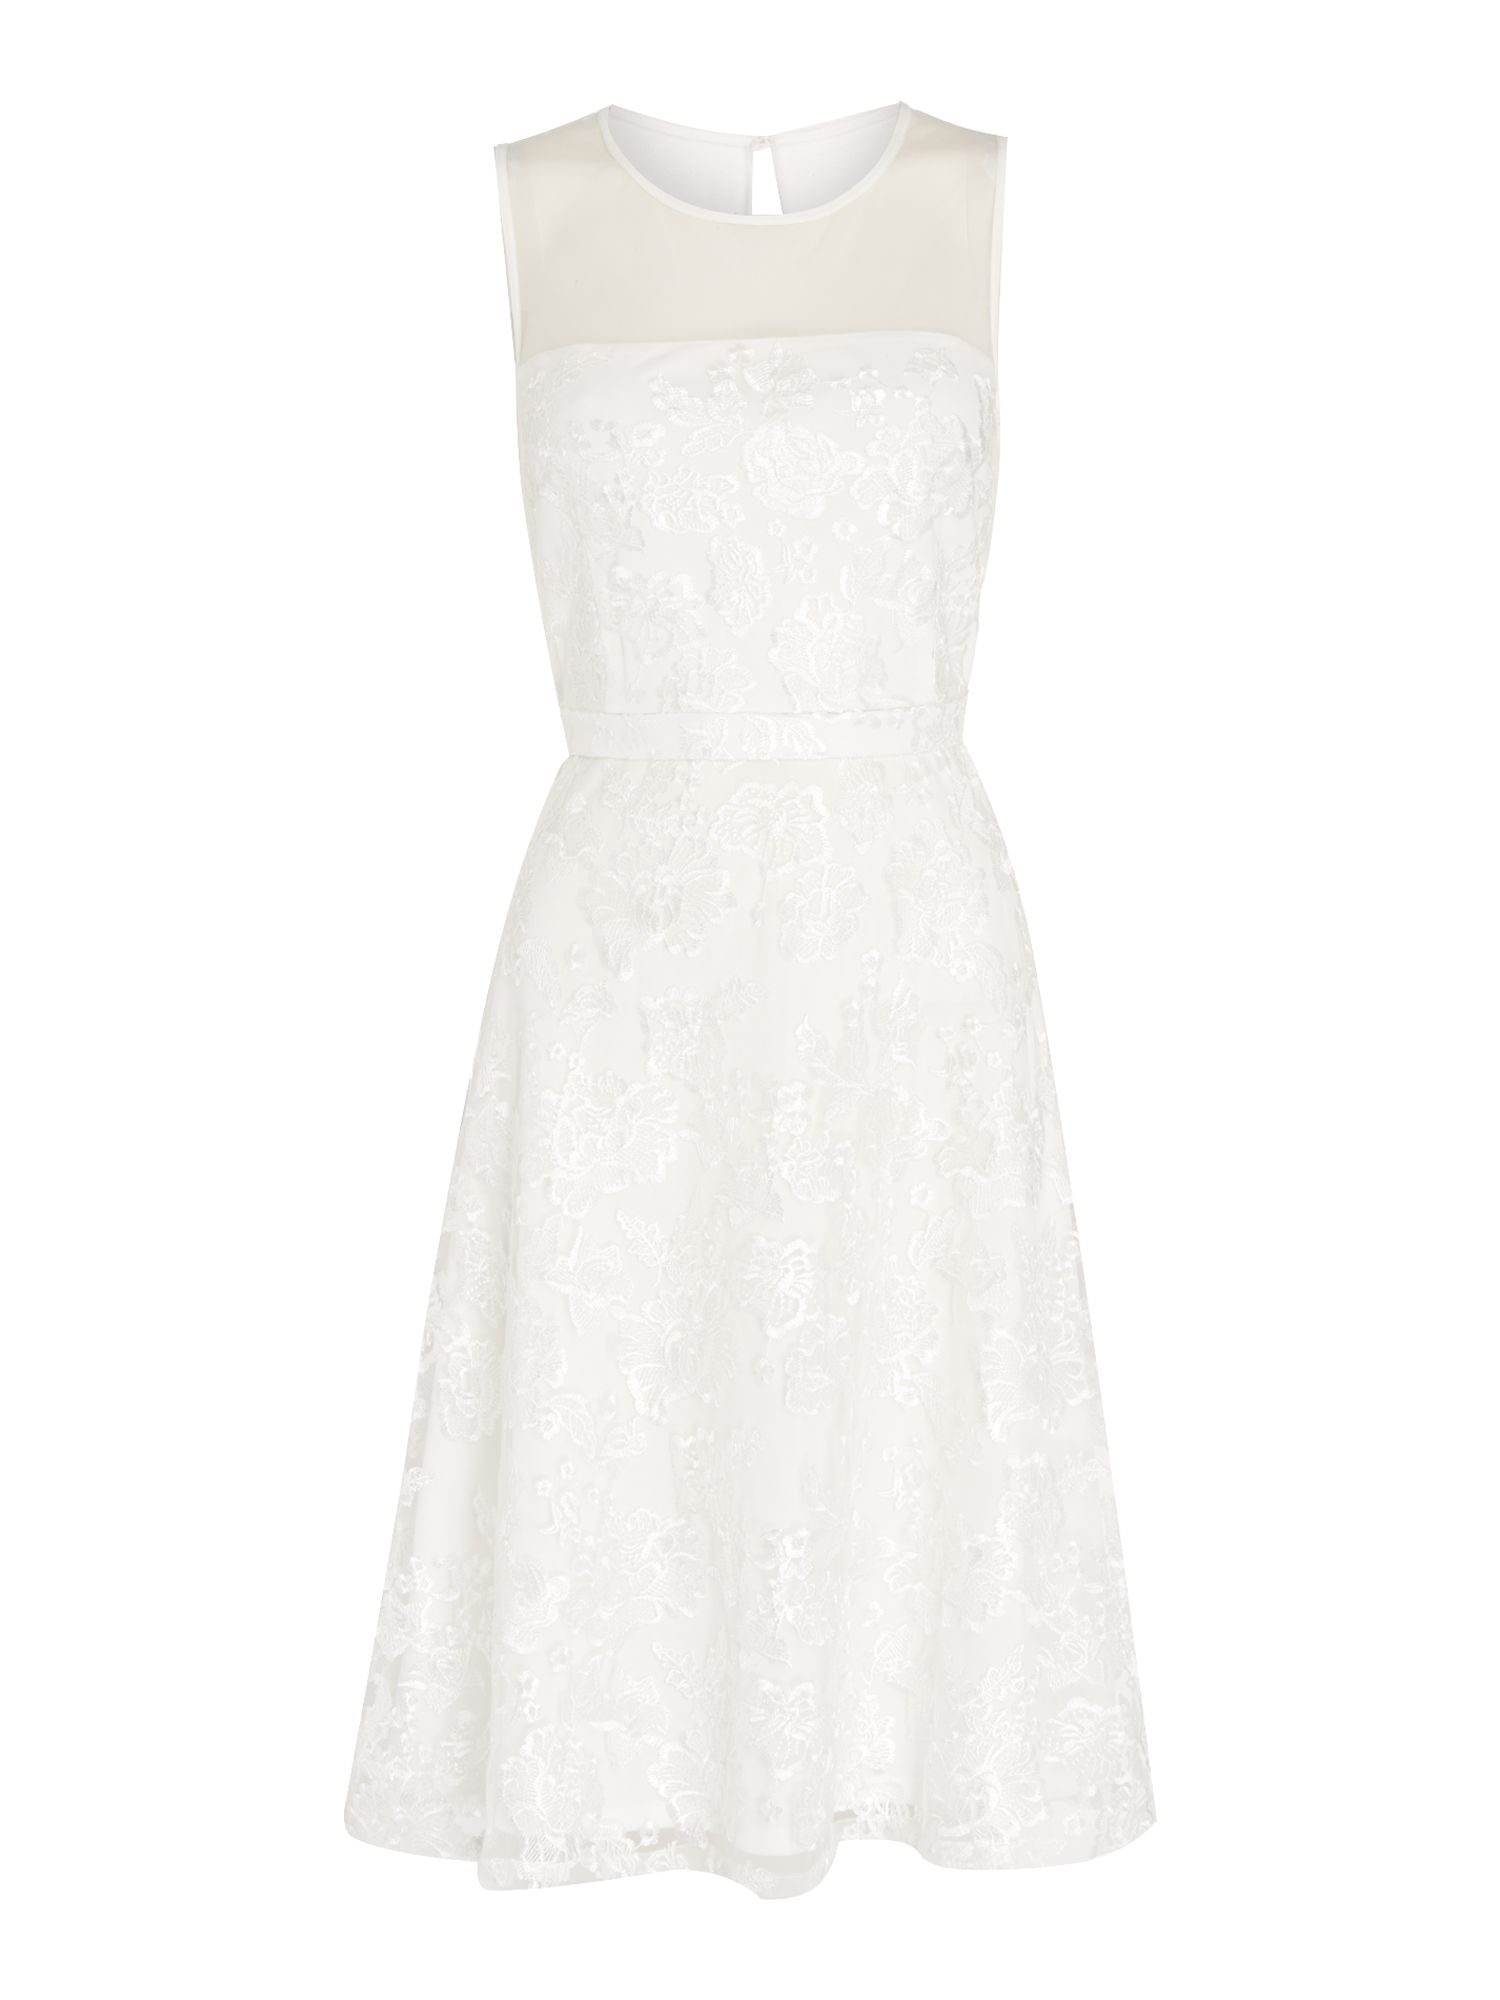 Shubette Shubette Floral lace fit and flare dress, White